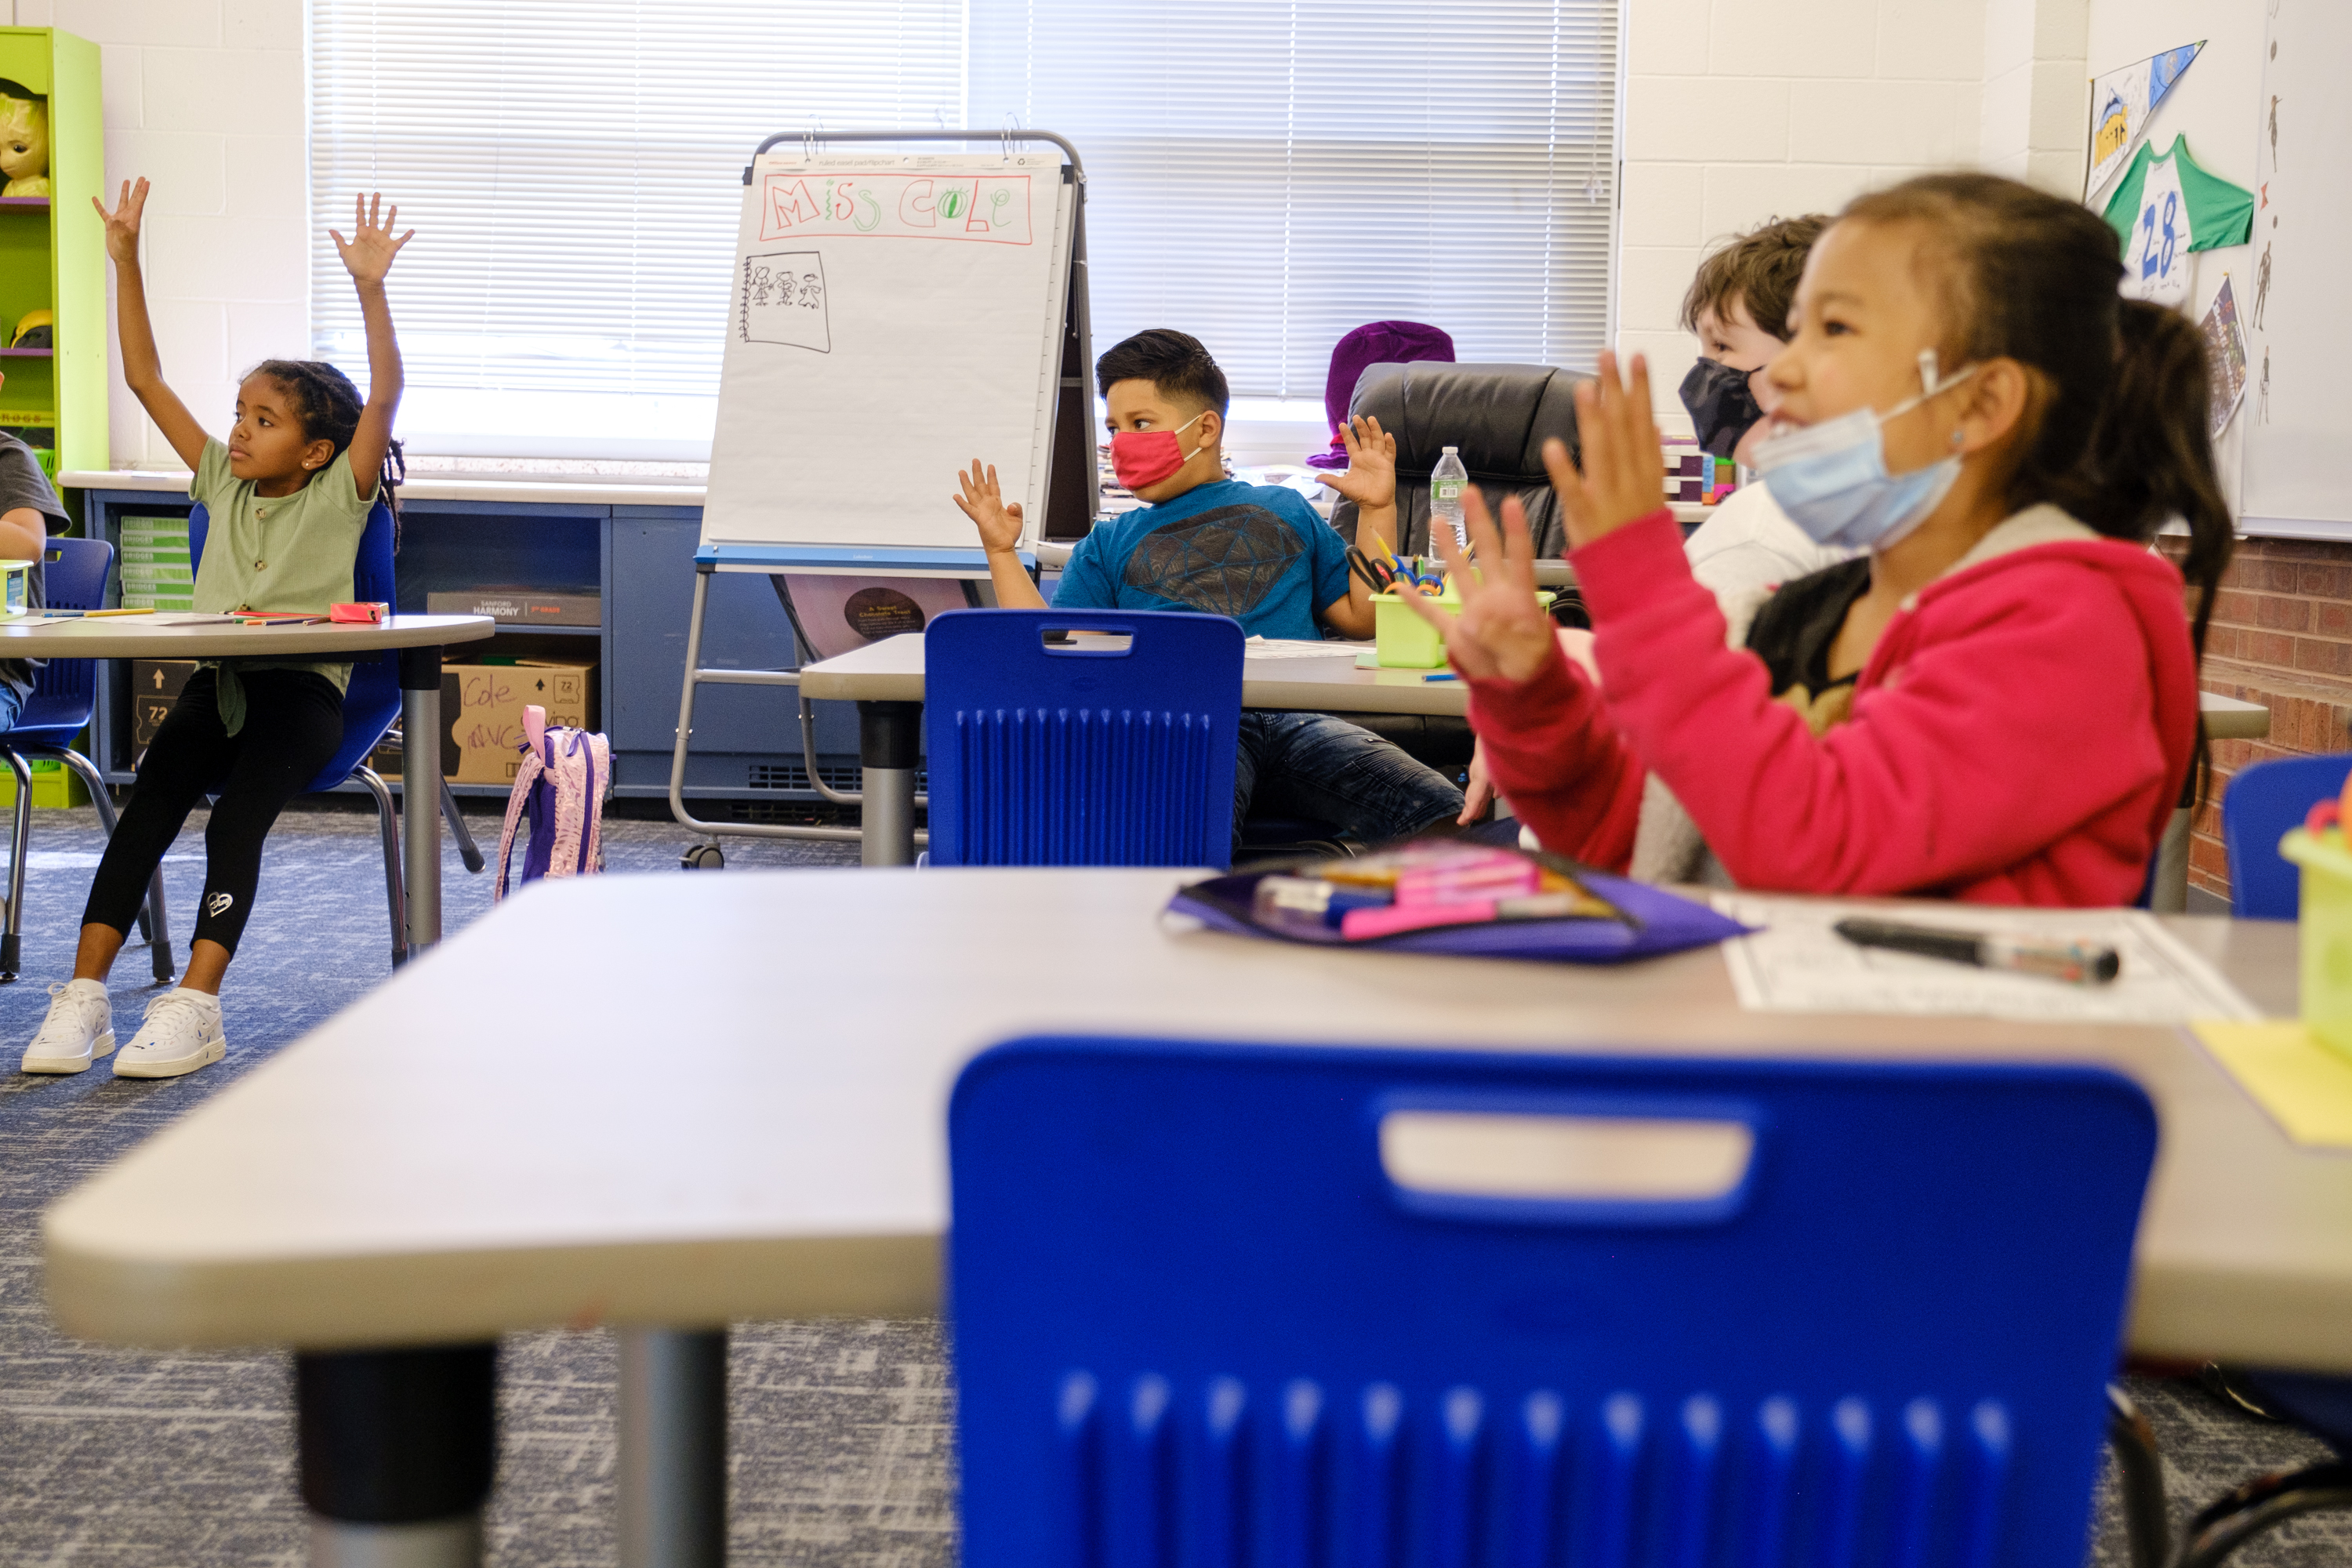 Elementary students excitedly raise their hands together at their desks. Some students are wearing protective masks, while others are not.